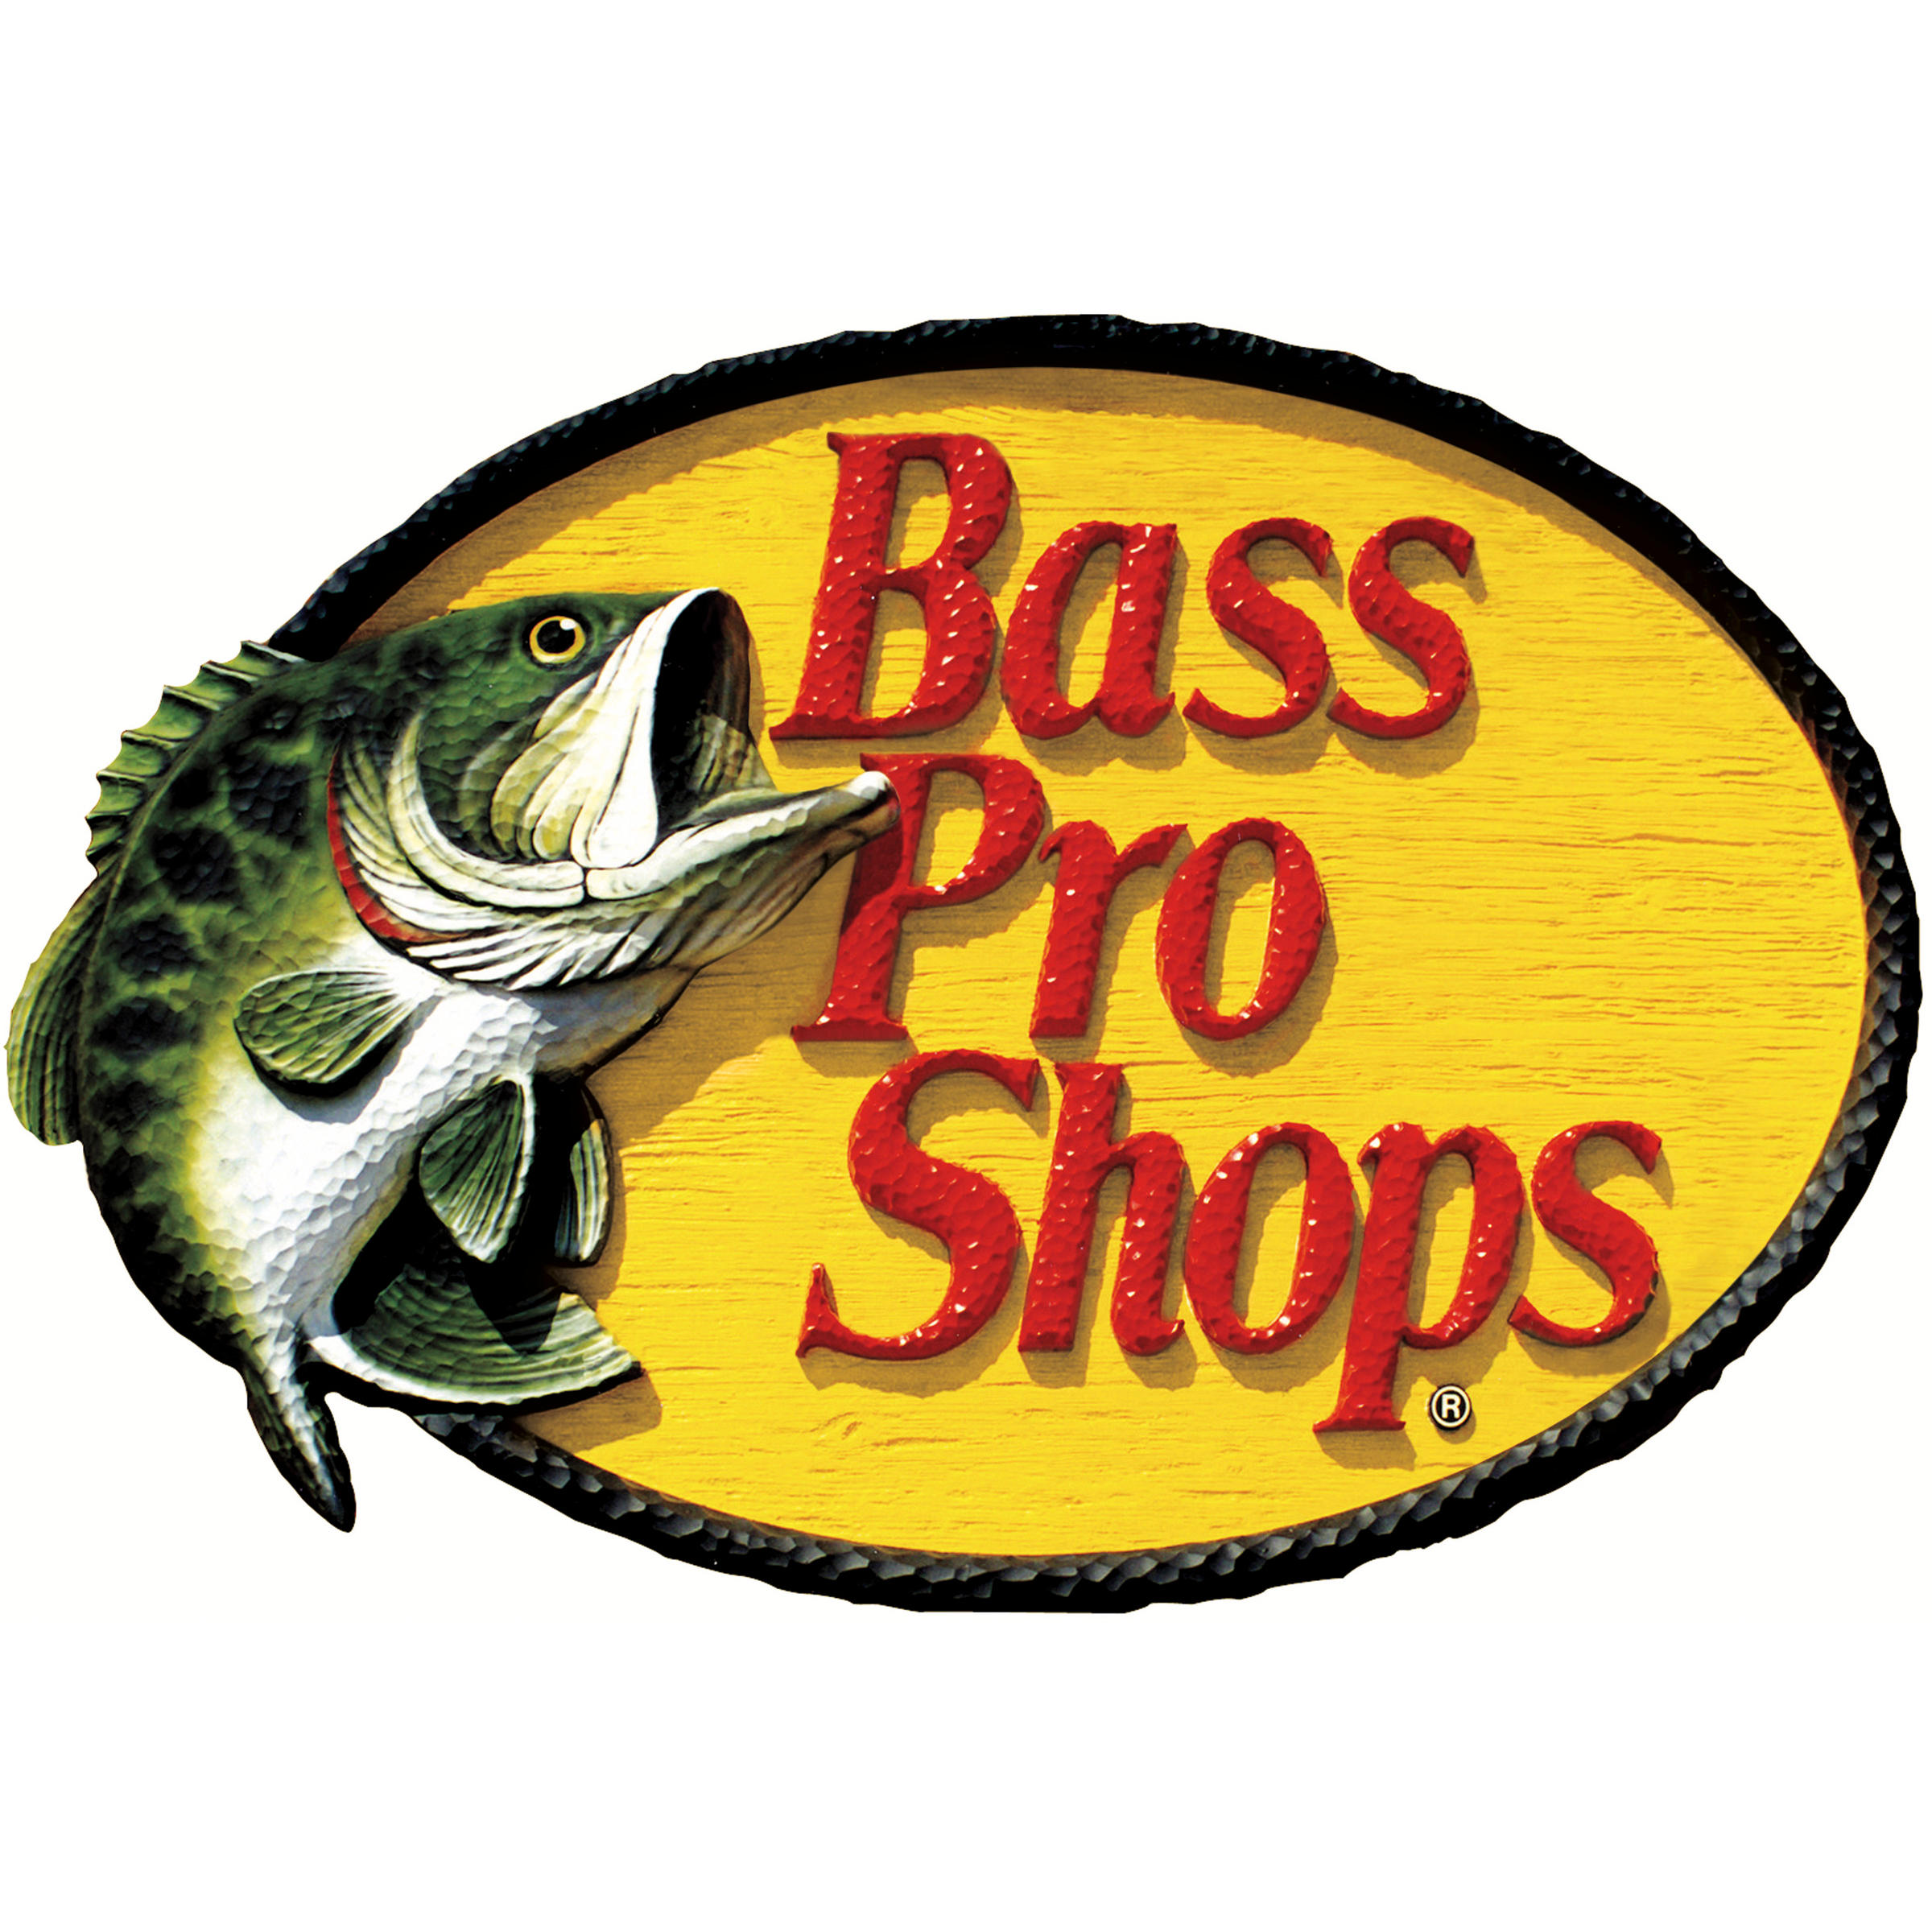 Bass Pro Shops - Macon, GA - Sporting Goods Stores